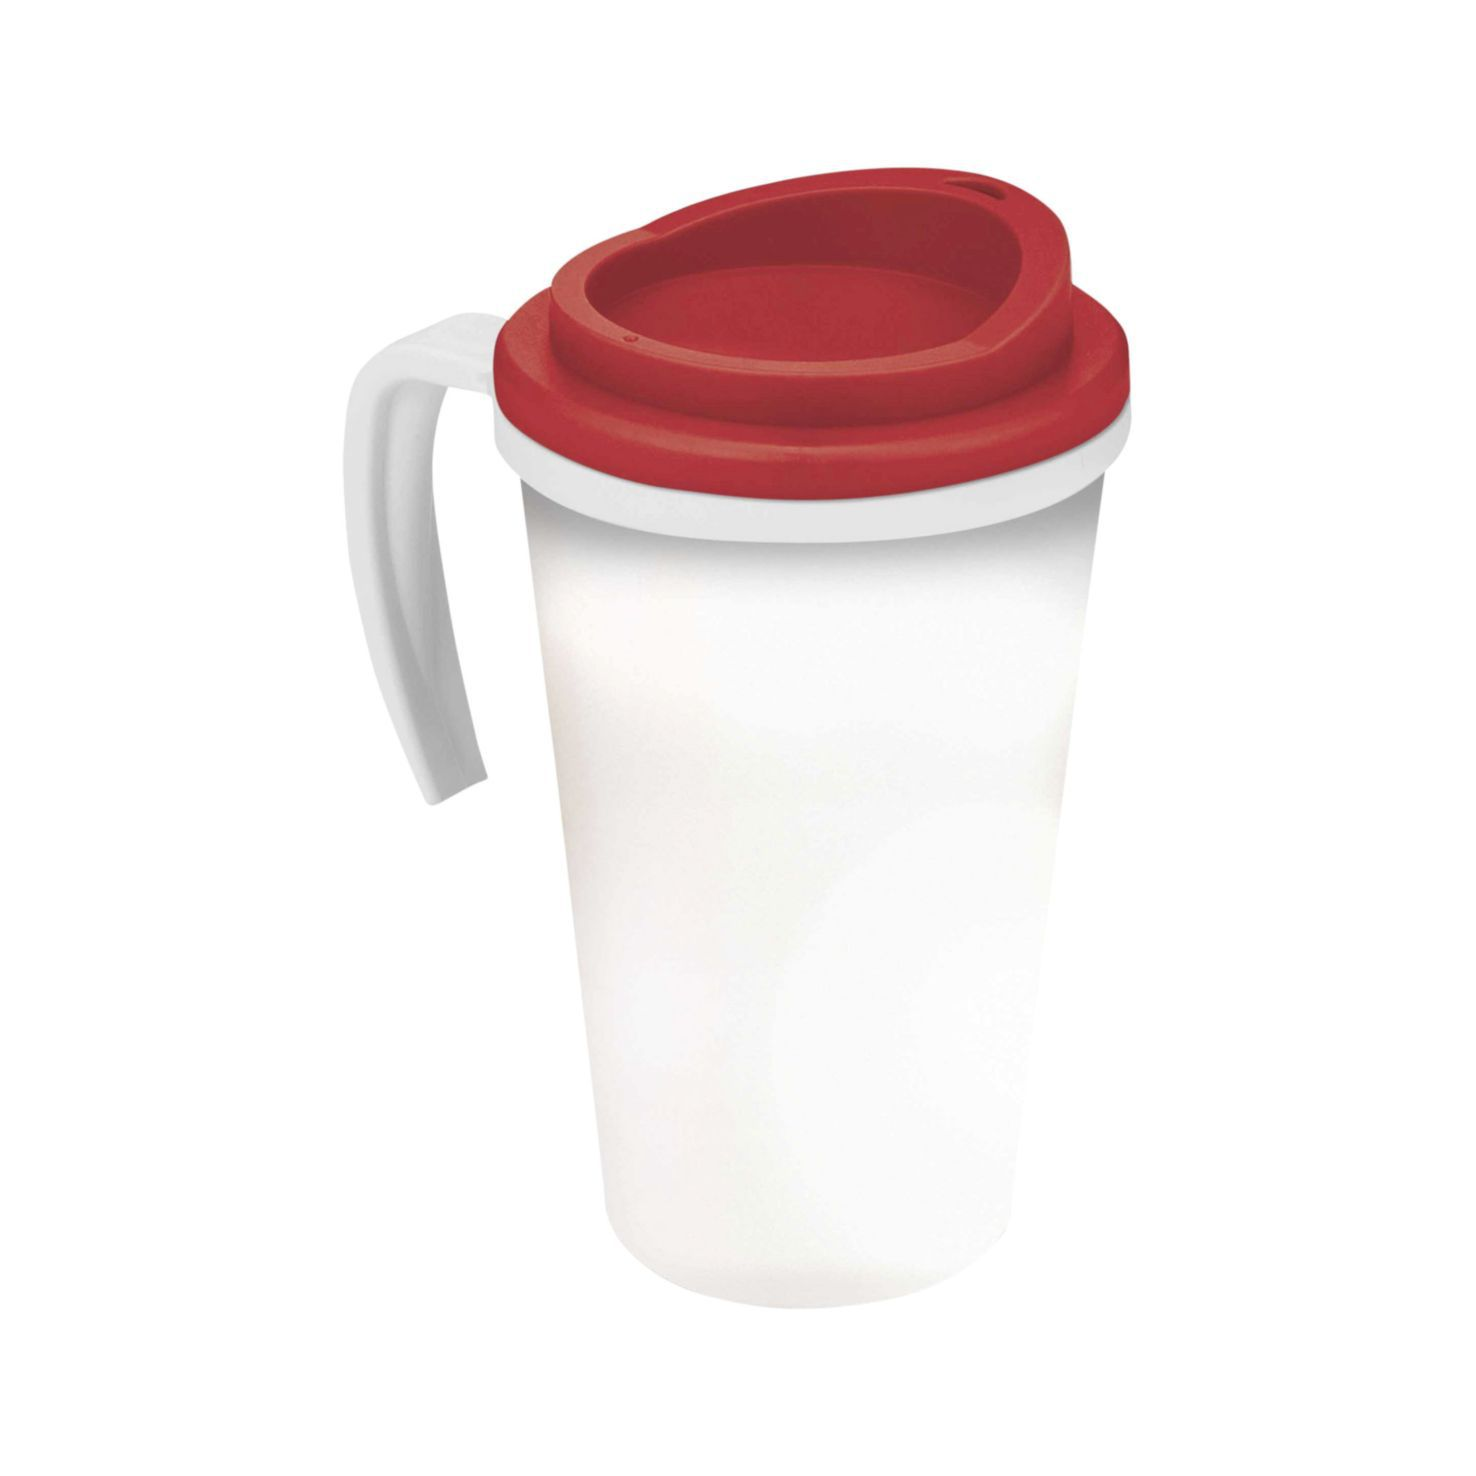 Wit / rood Thermosbeker to go | Met handvat | 350 ml